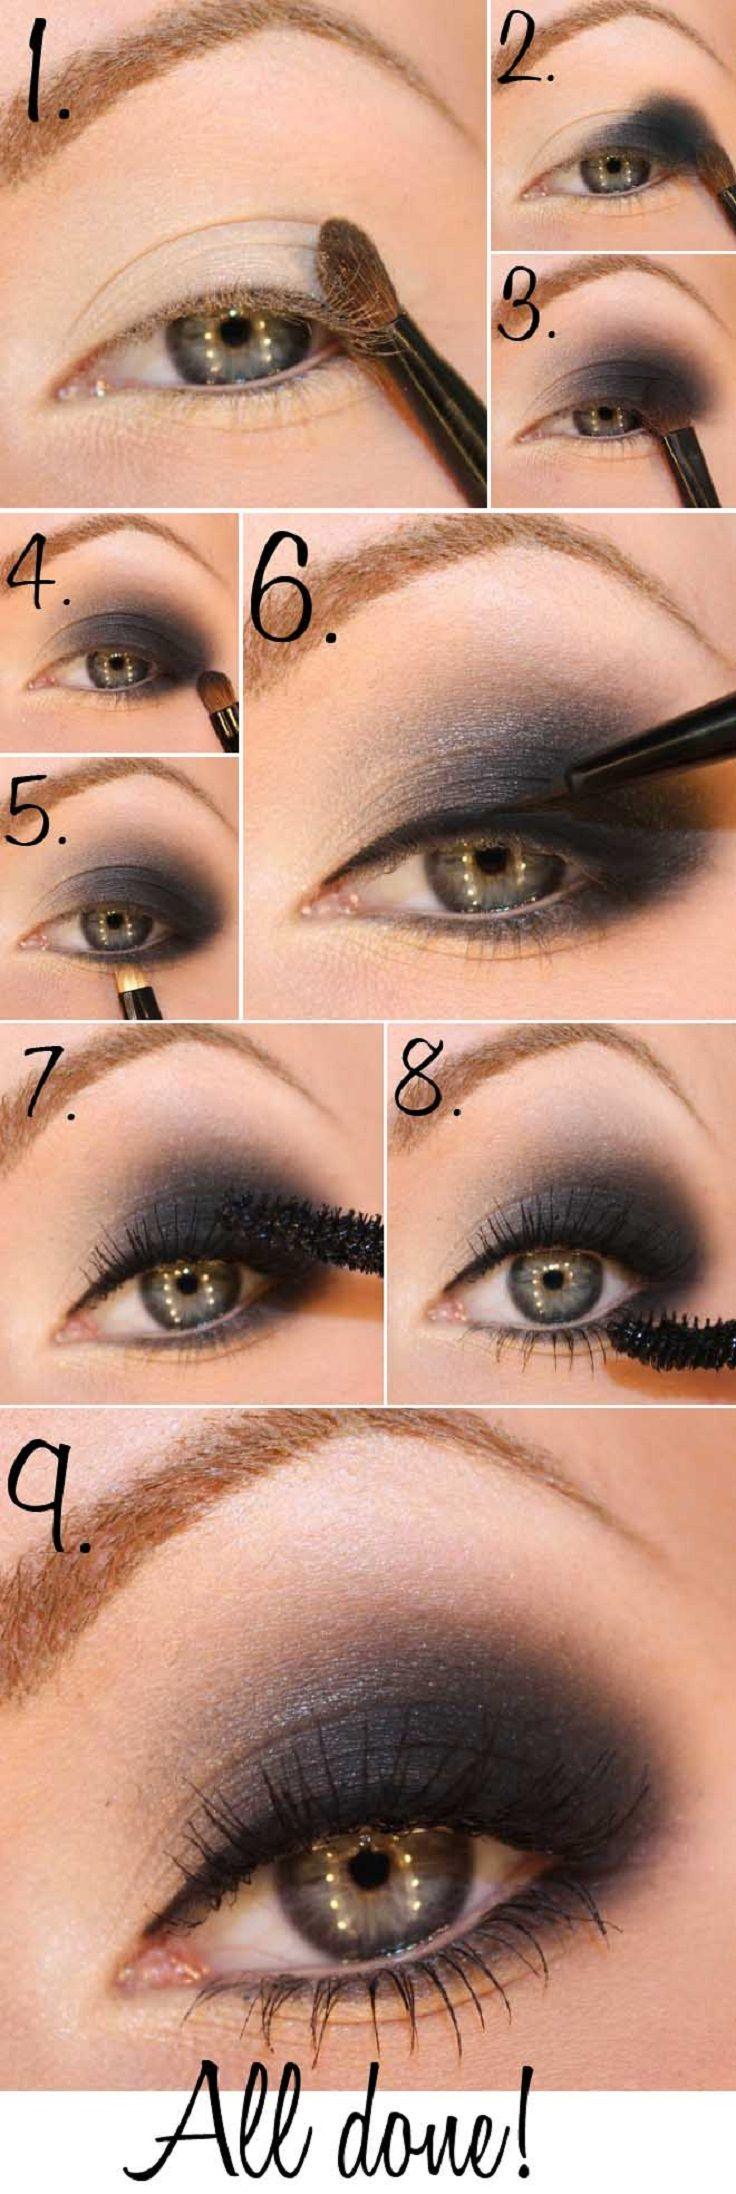 Top 10 Gorgeous Night Eye Makeup Tutorials - Page 10 of 10 - Top Inspired